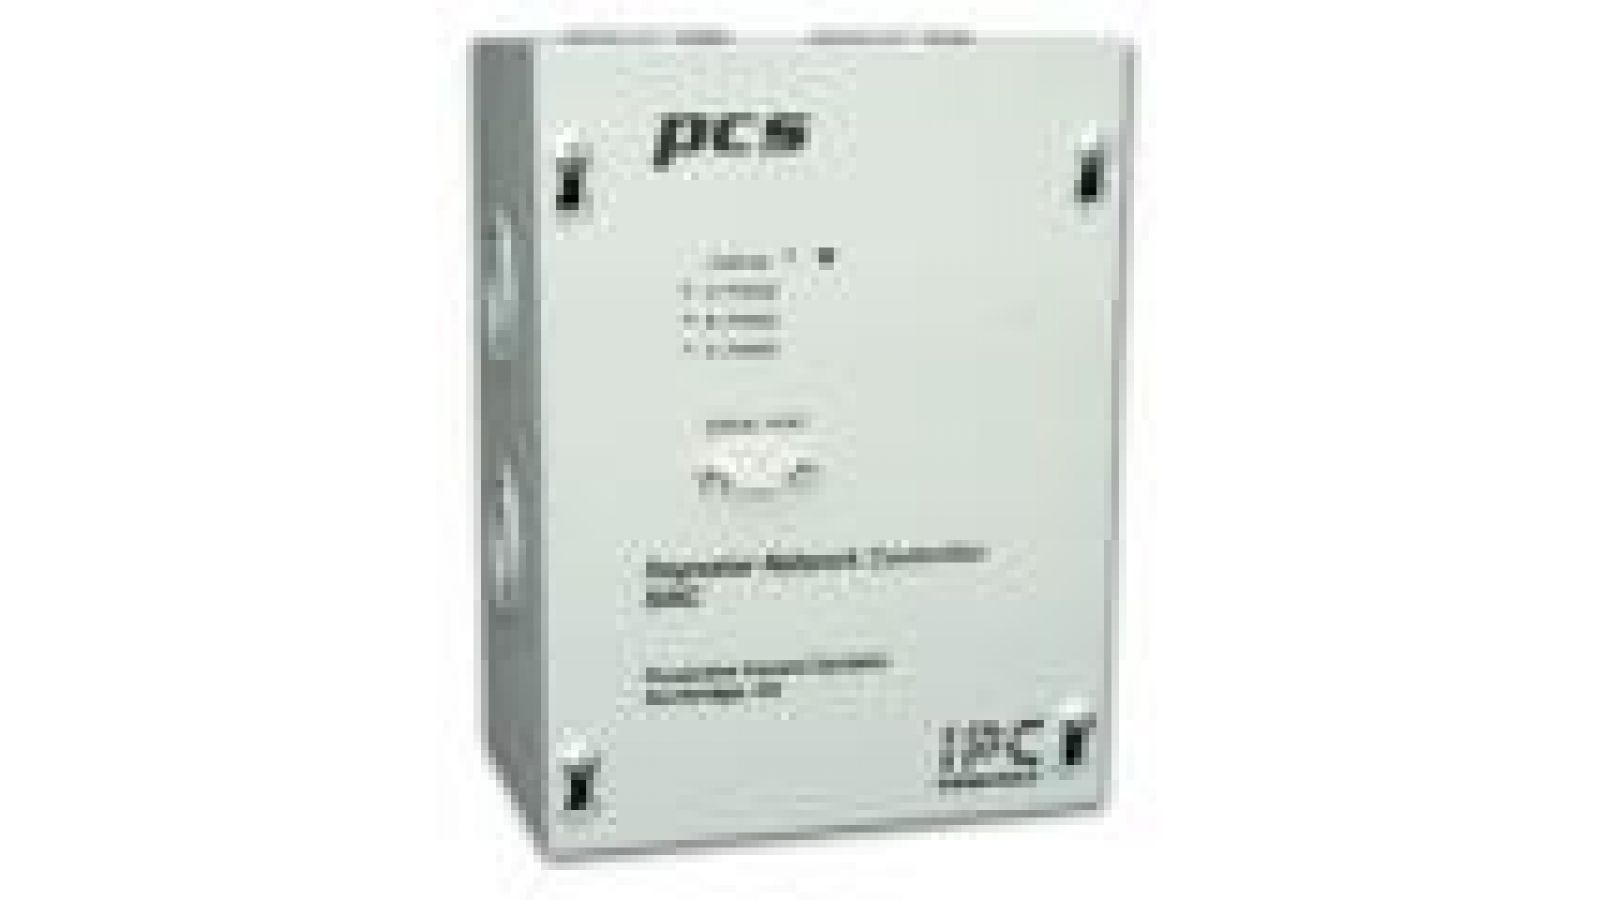 IPC (Industrial Powerline Communications)